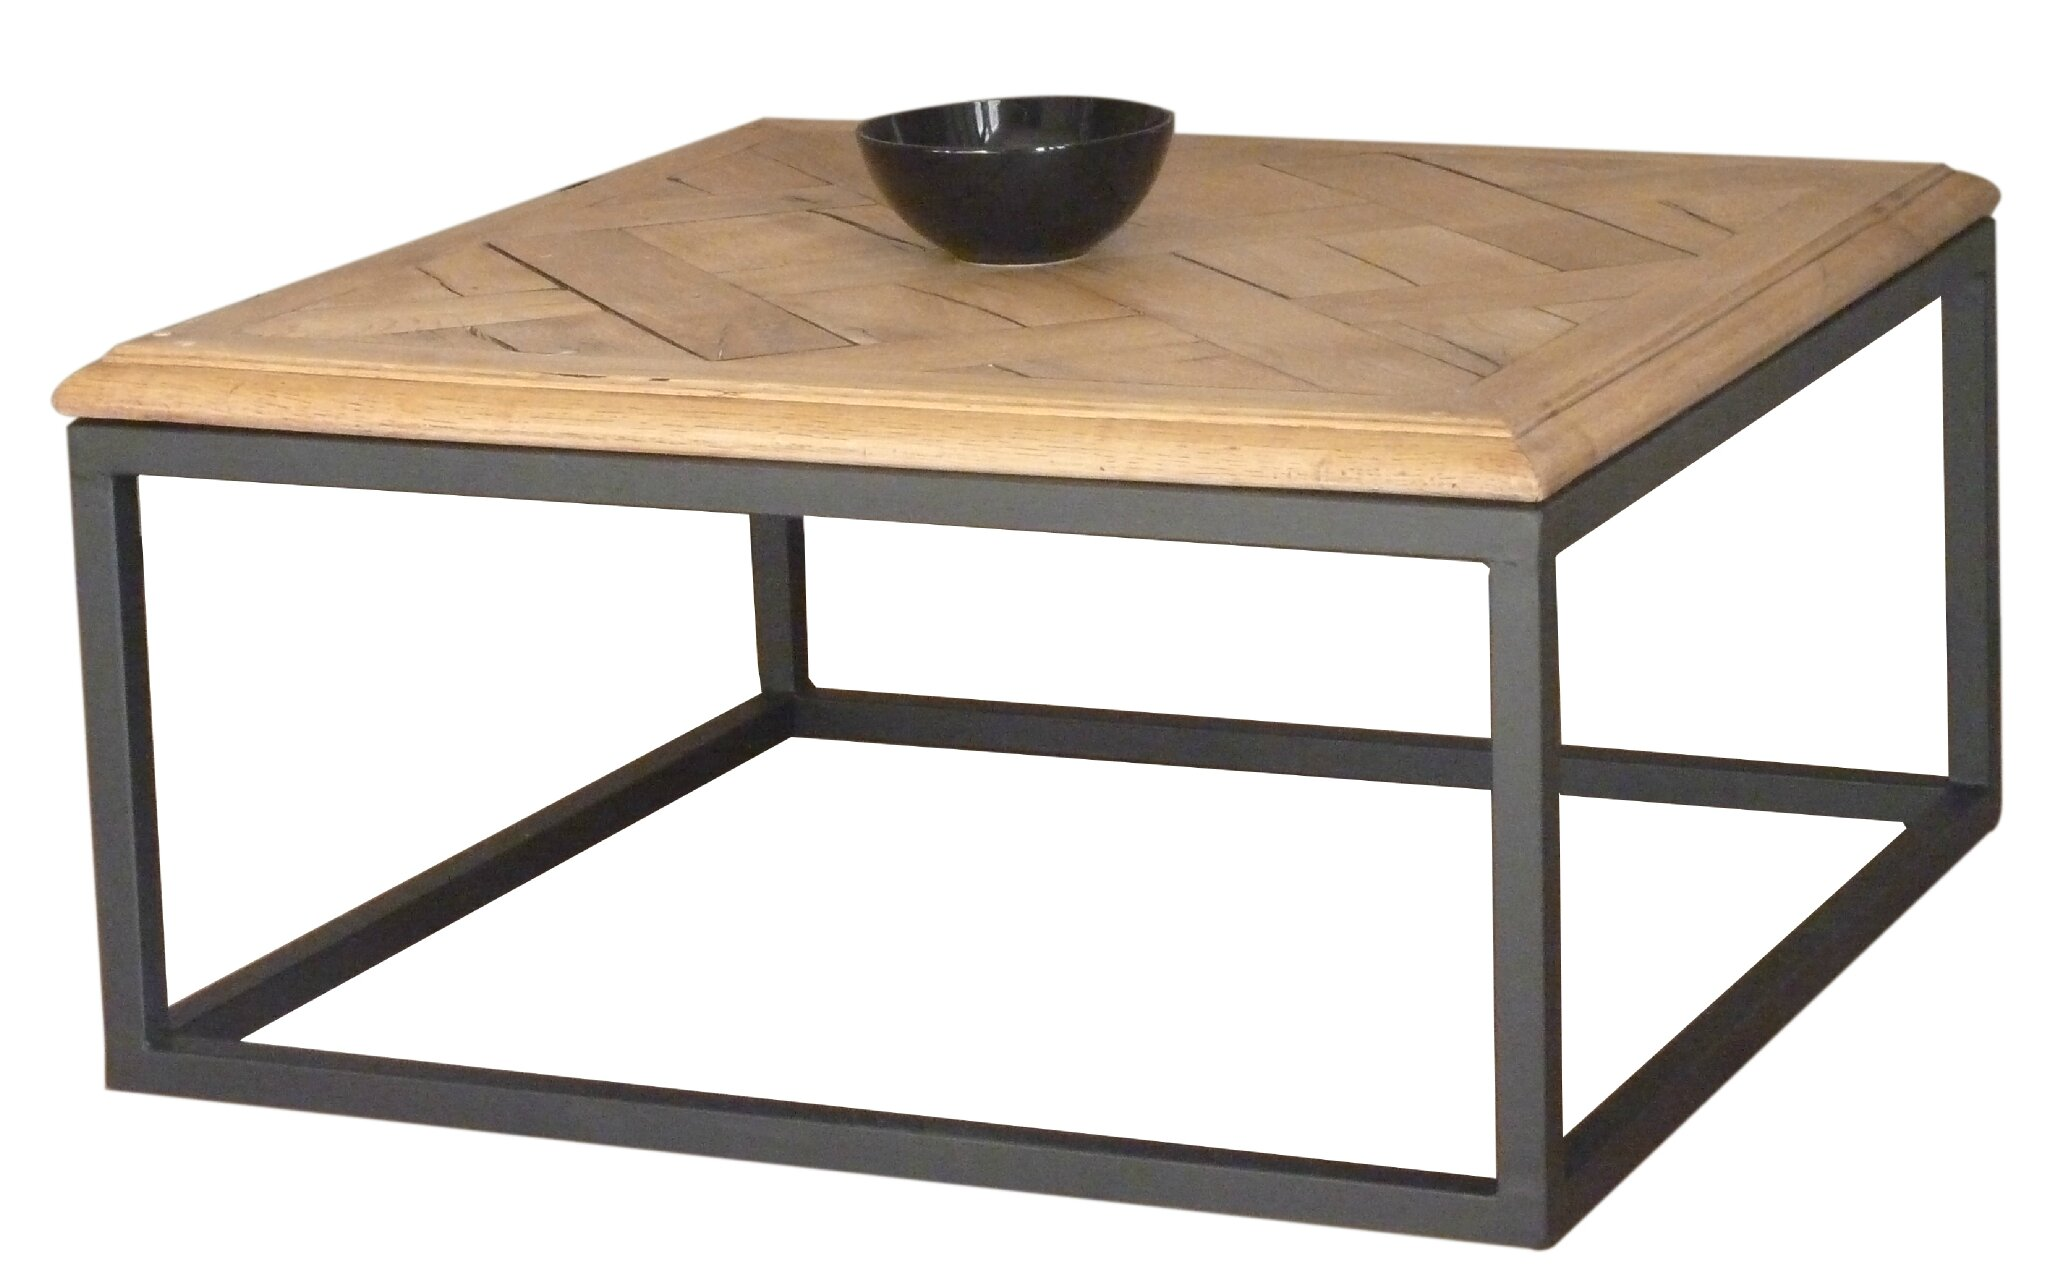 Table de salon pas chere maison design - Deco table champetre pas chere ...